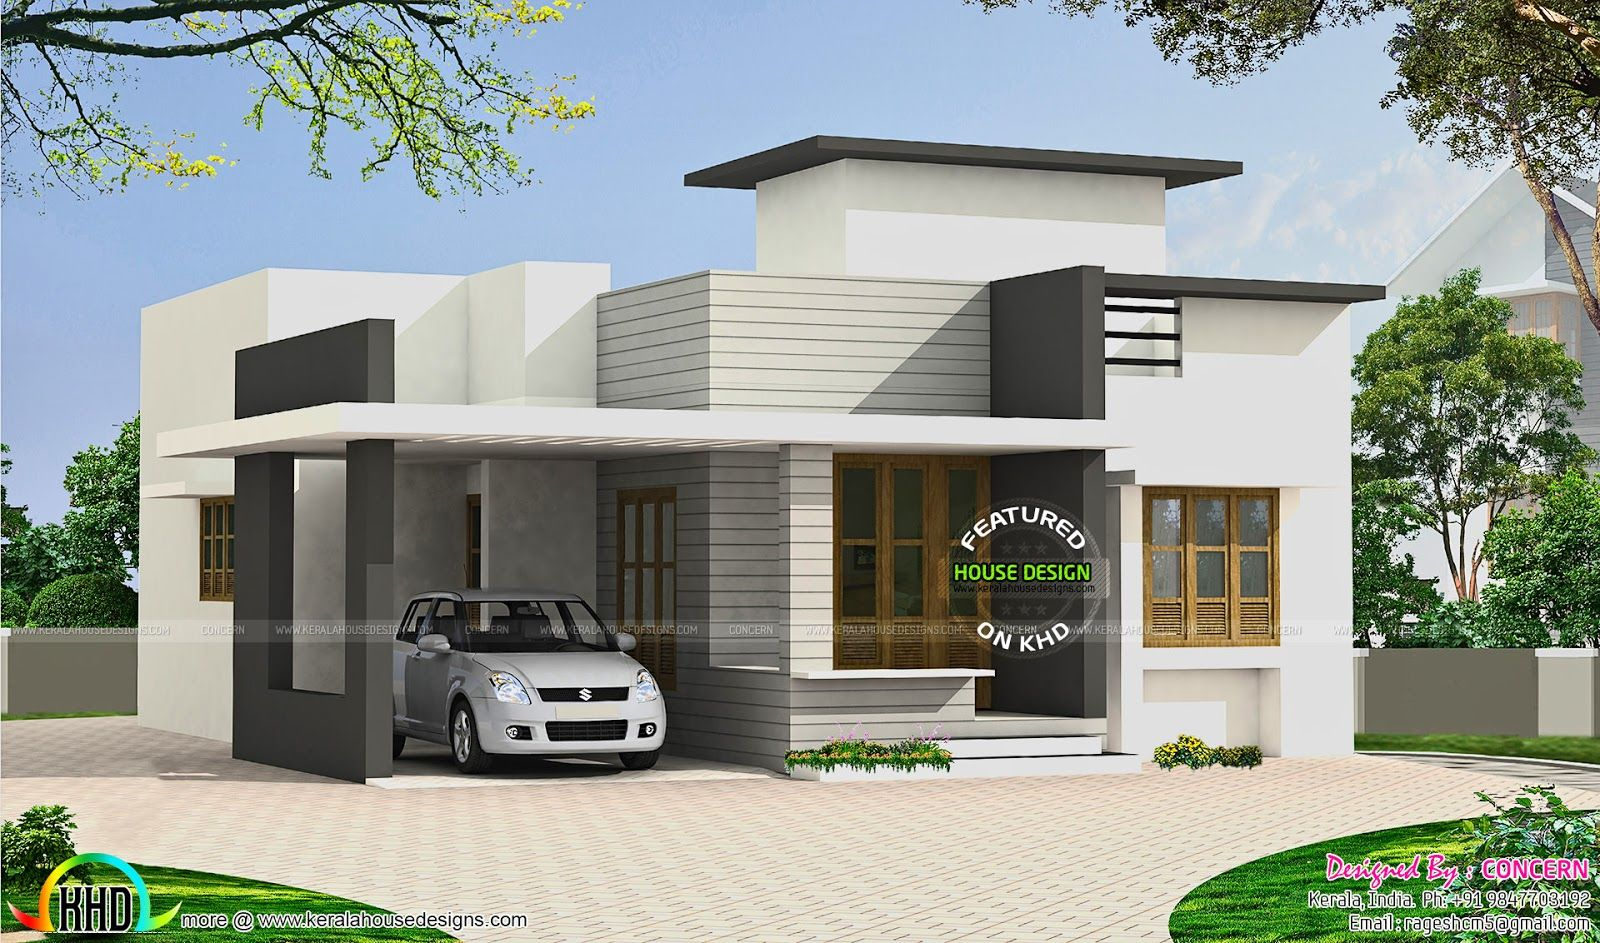 Contemporary House Elevation Single Floor: Image Result For Parking Roof Design In Single Floor